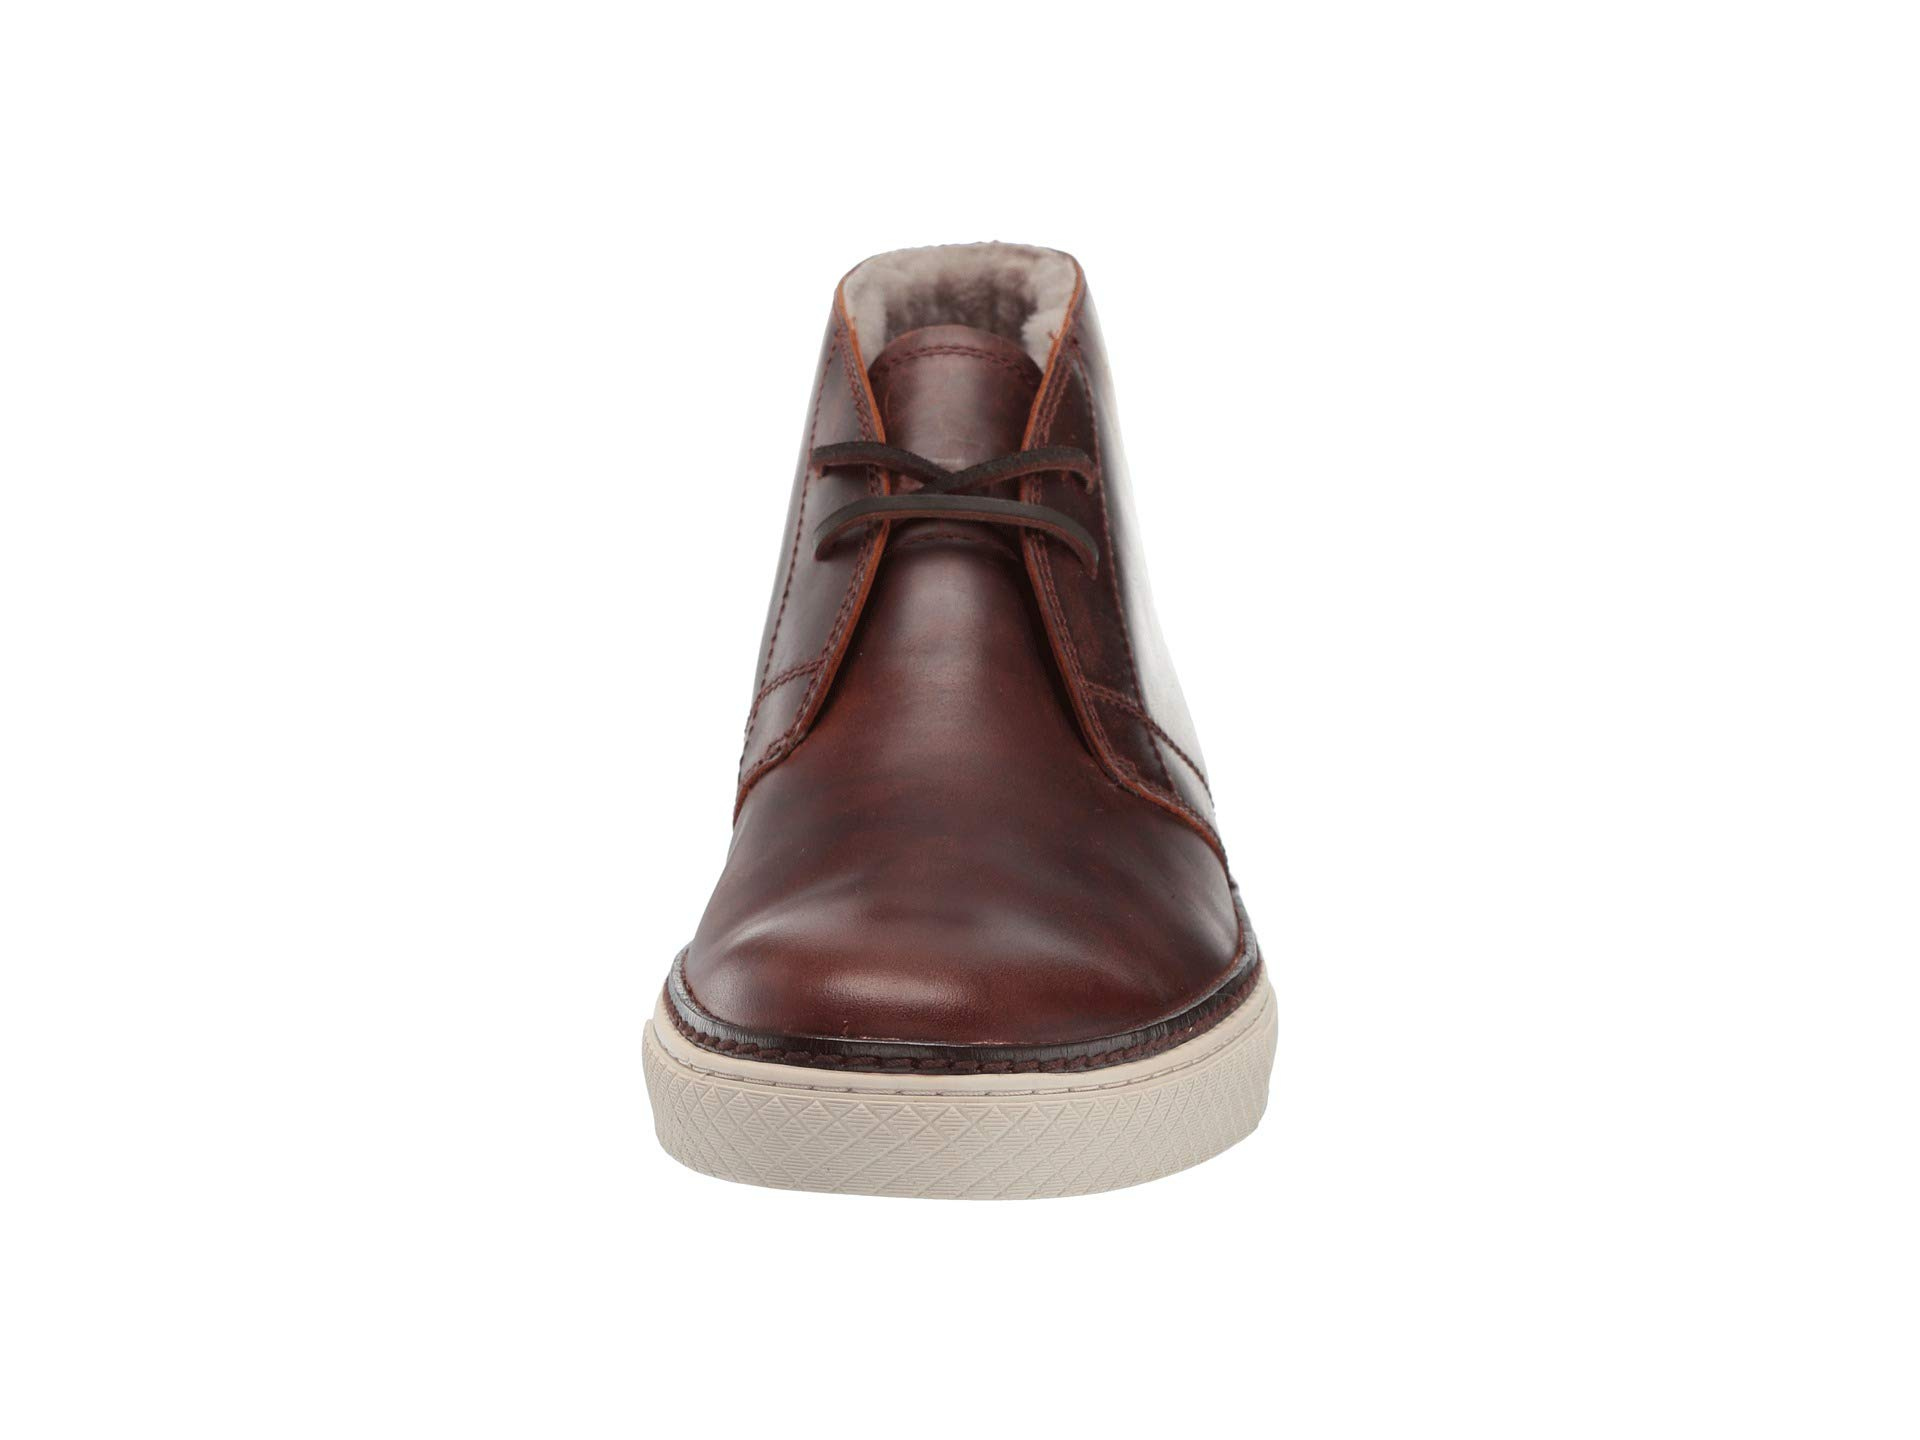 Smooth Wp Pull Chukka Essex Dark shearling up Brown Frye qwnHPvX1